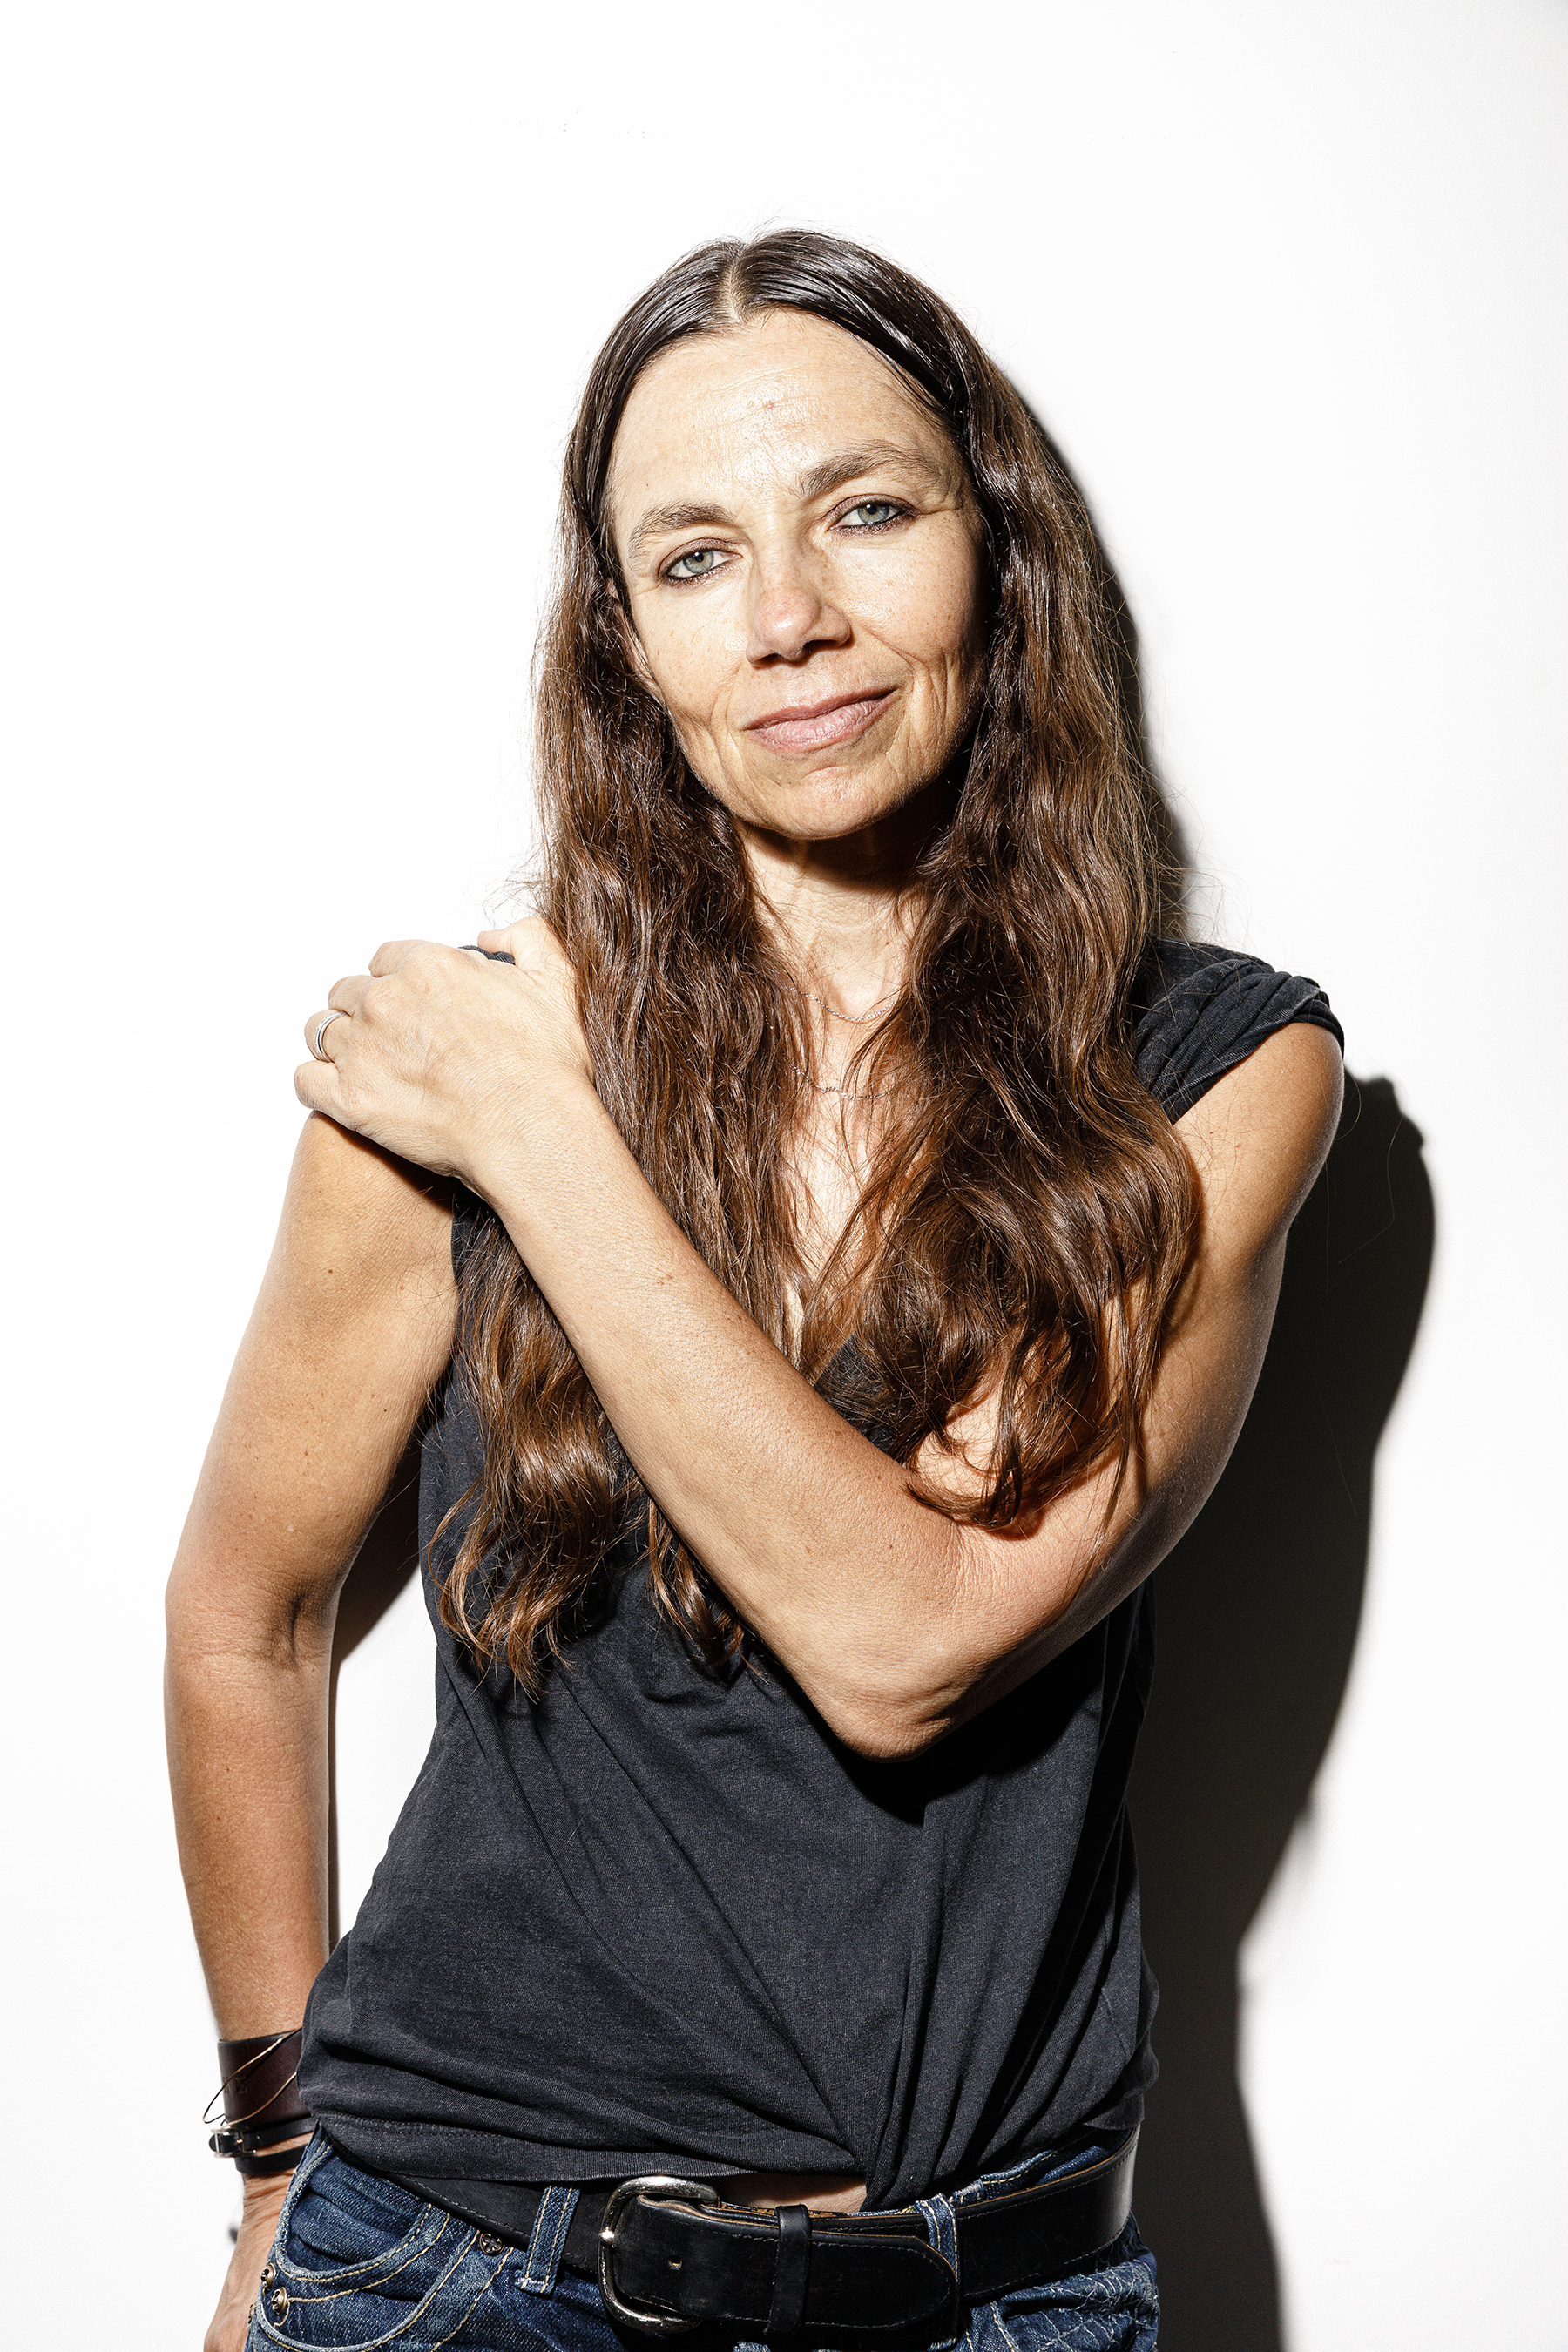 Justine Bateman, author of FACE One Square Foot of Skin